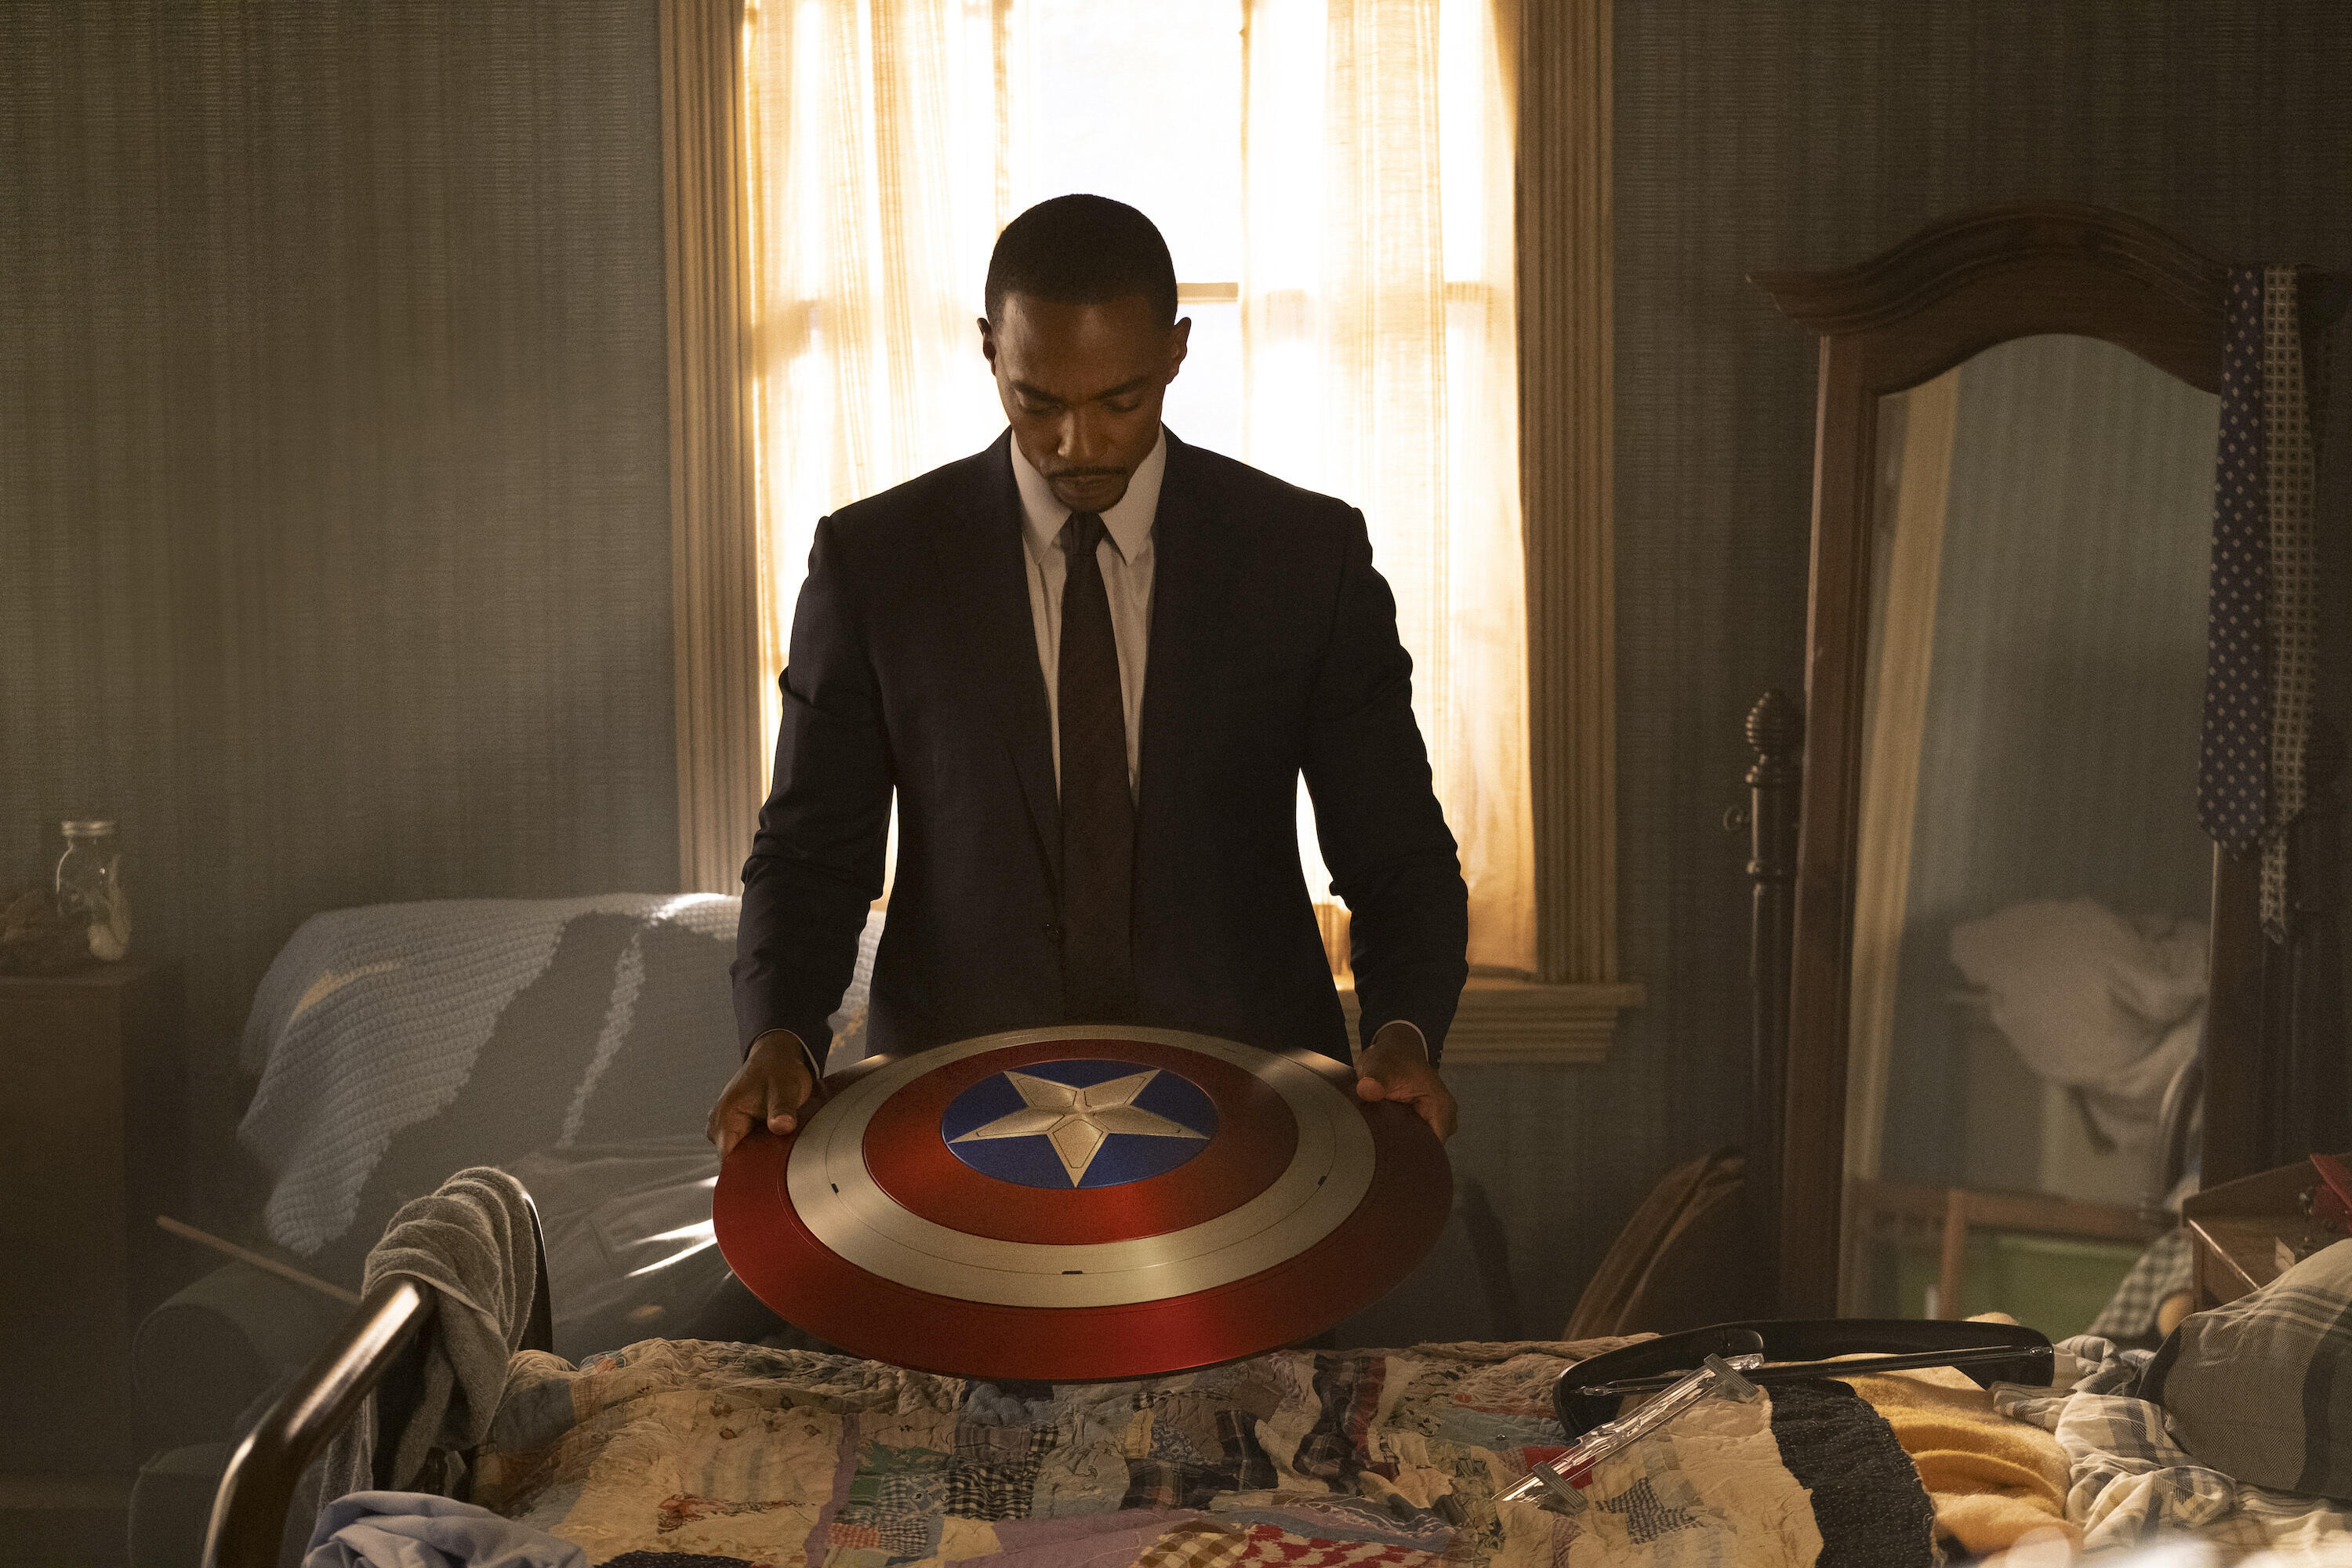 Sam Wilson with Captain America's shield